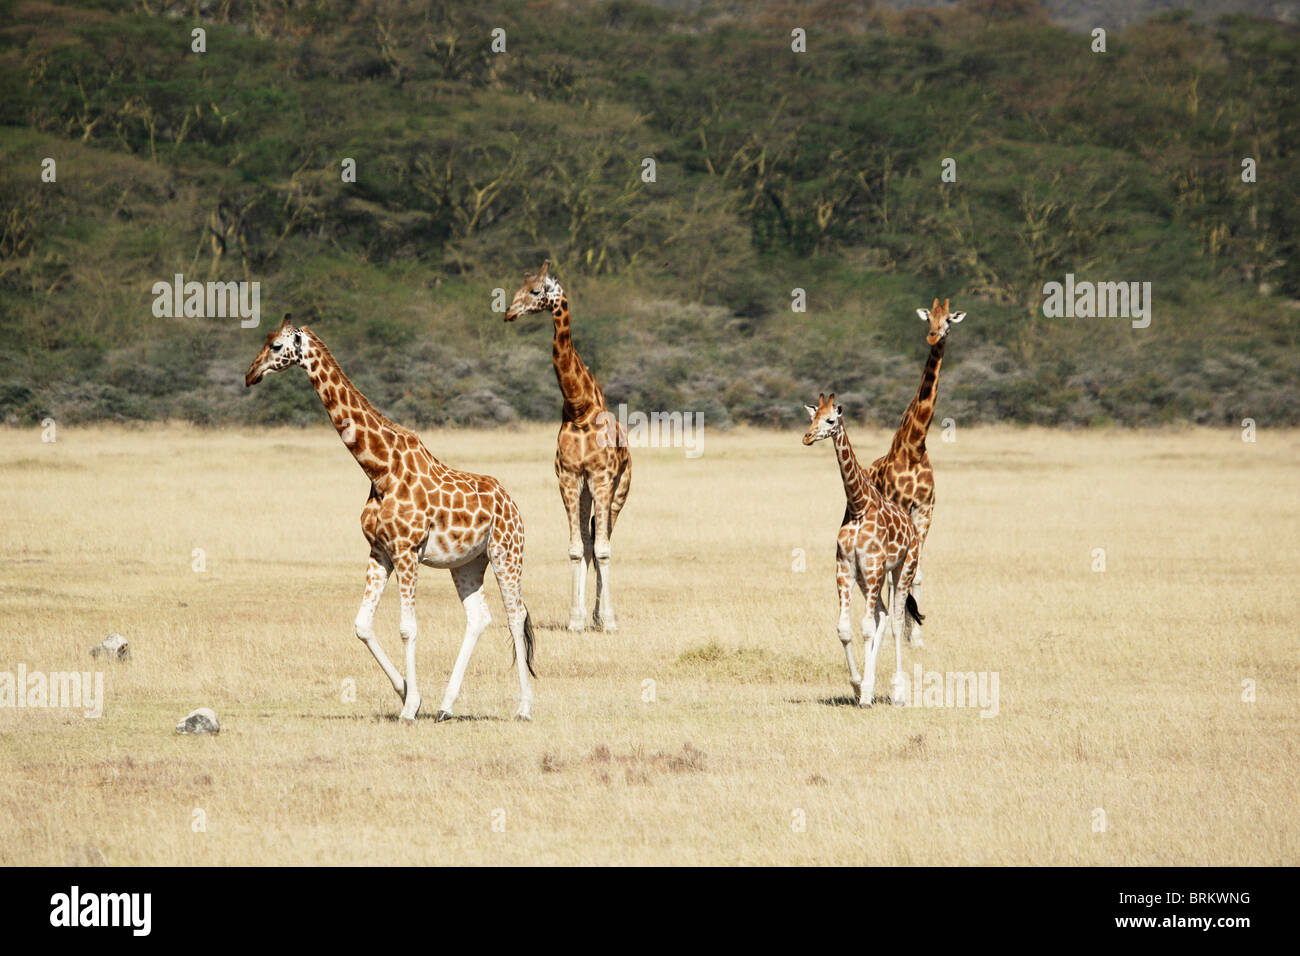 Herd of Rothschild giraffe - Stock Image